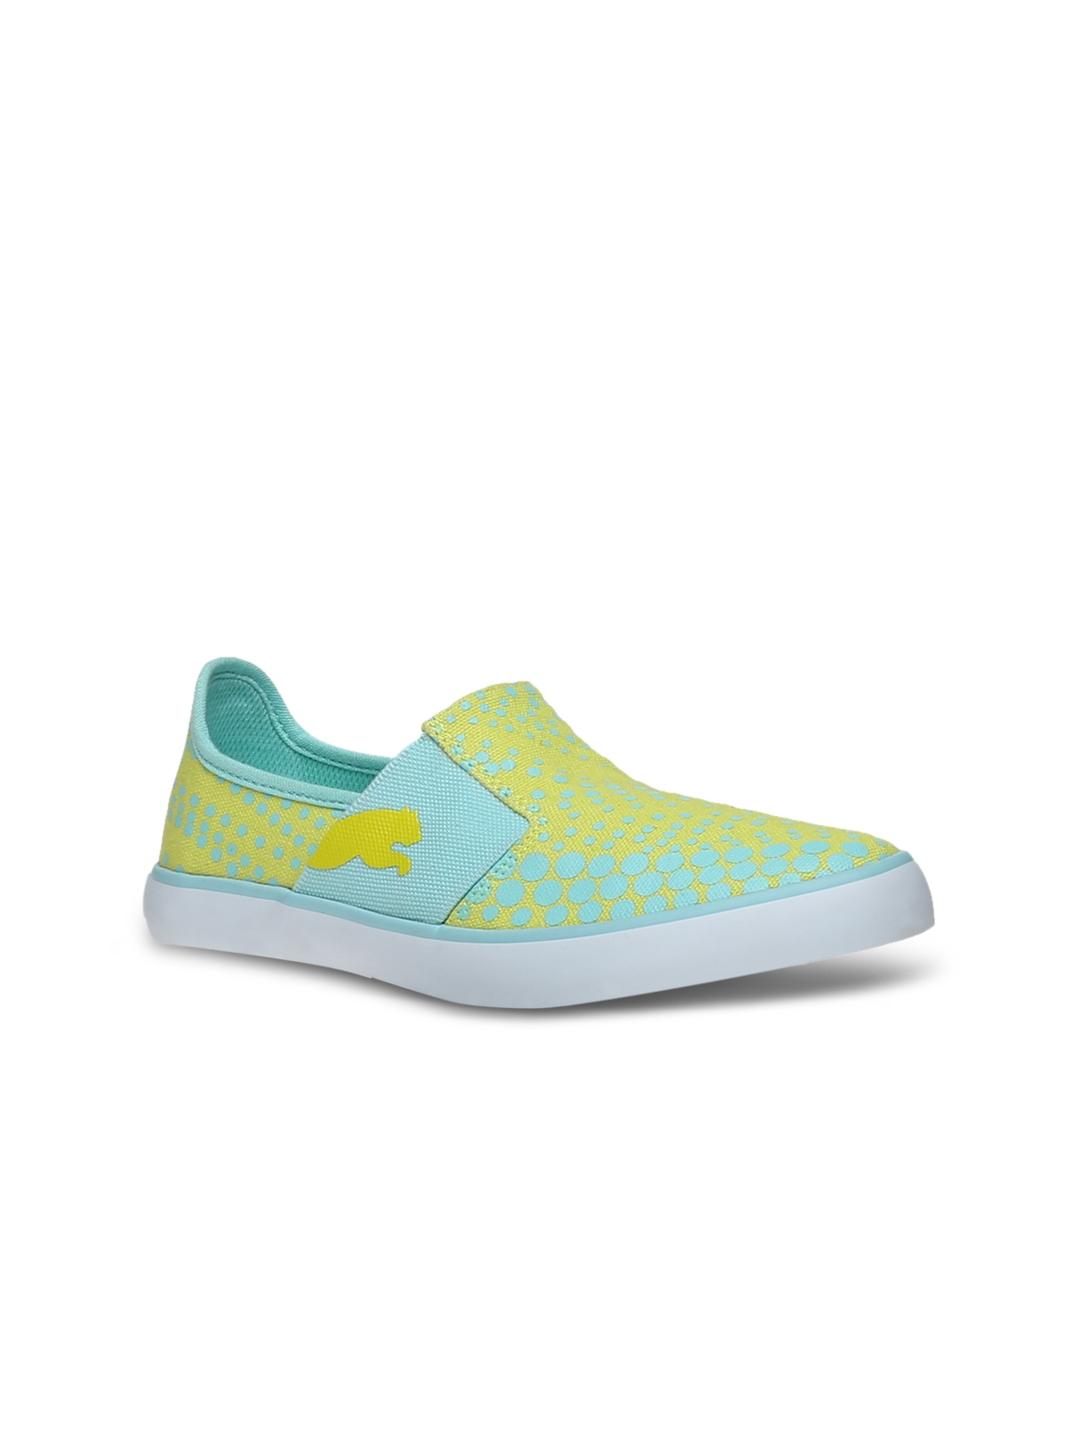 Buy PUMA Women Blue   Yellow Printed Regular Slip On Sneakers ... cbe3efef5